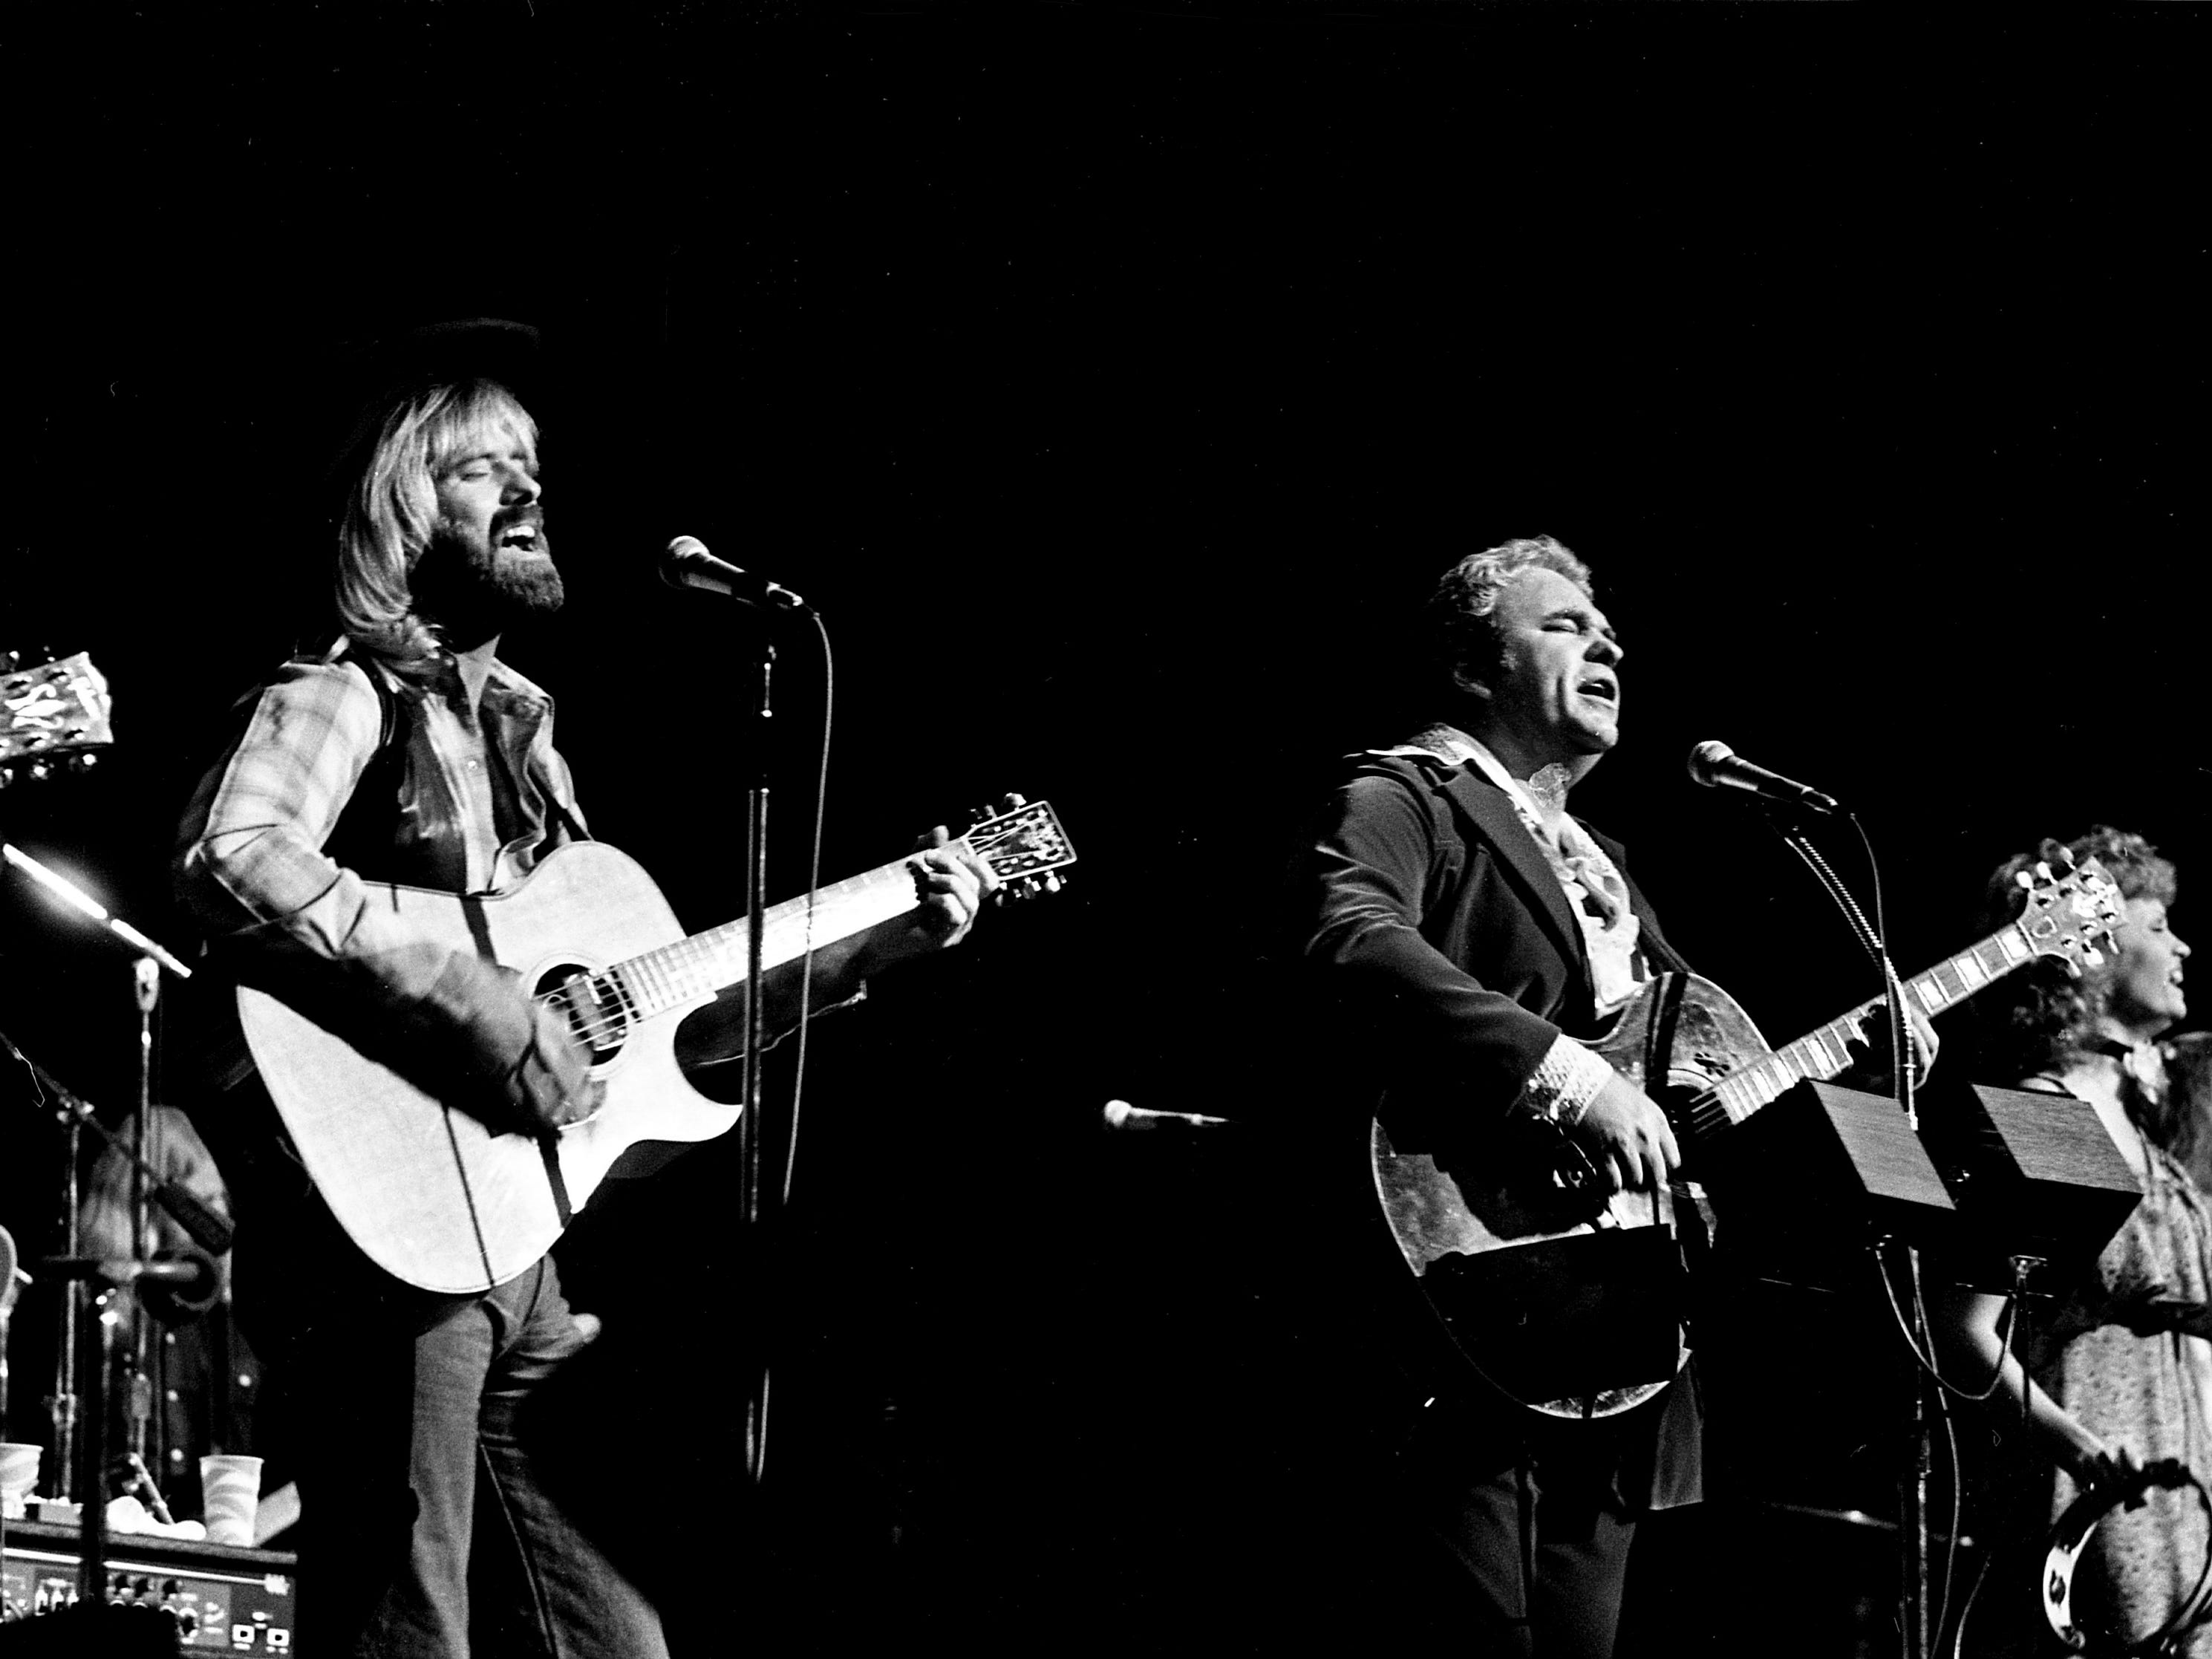 Special surprise guest Michael Martin Murphey, left, joins Hoyt Axton during Axton's Halloween concert at the Grand Ole Opry House on Oct. 31, 1978.